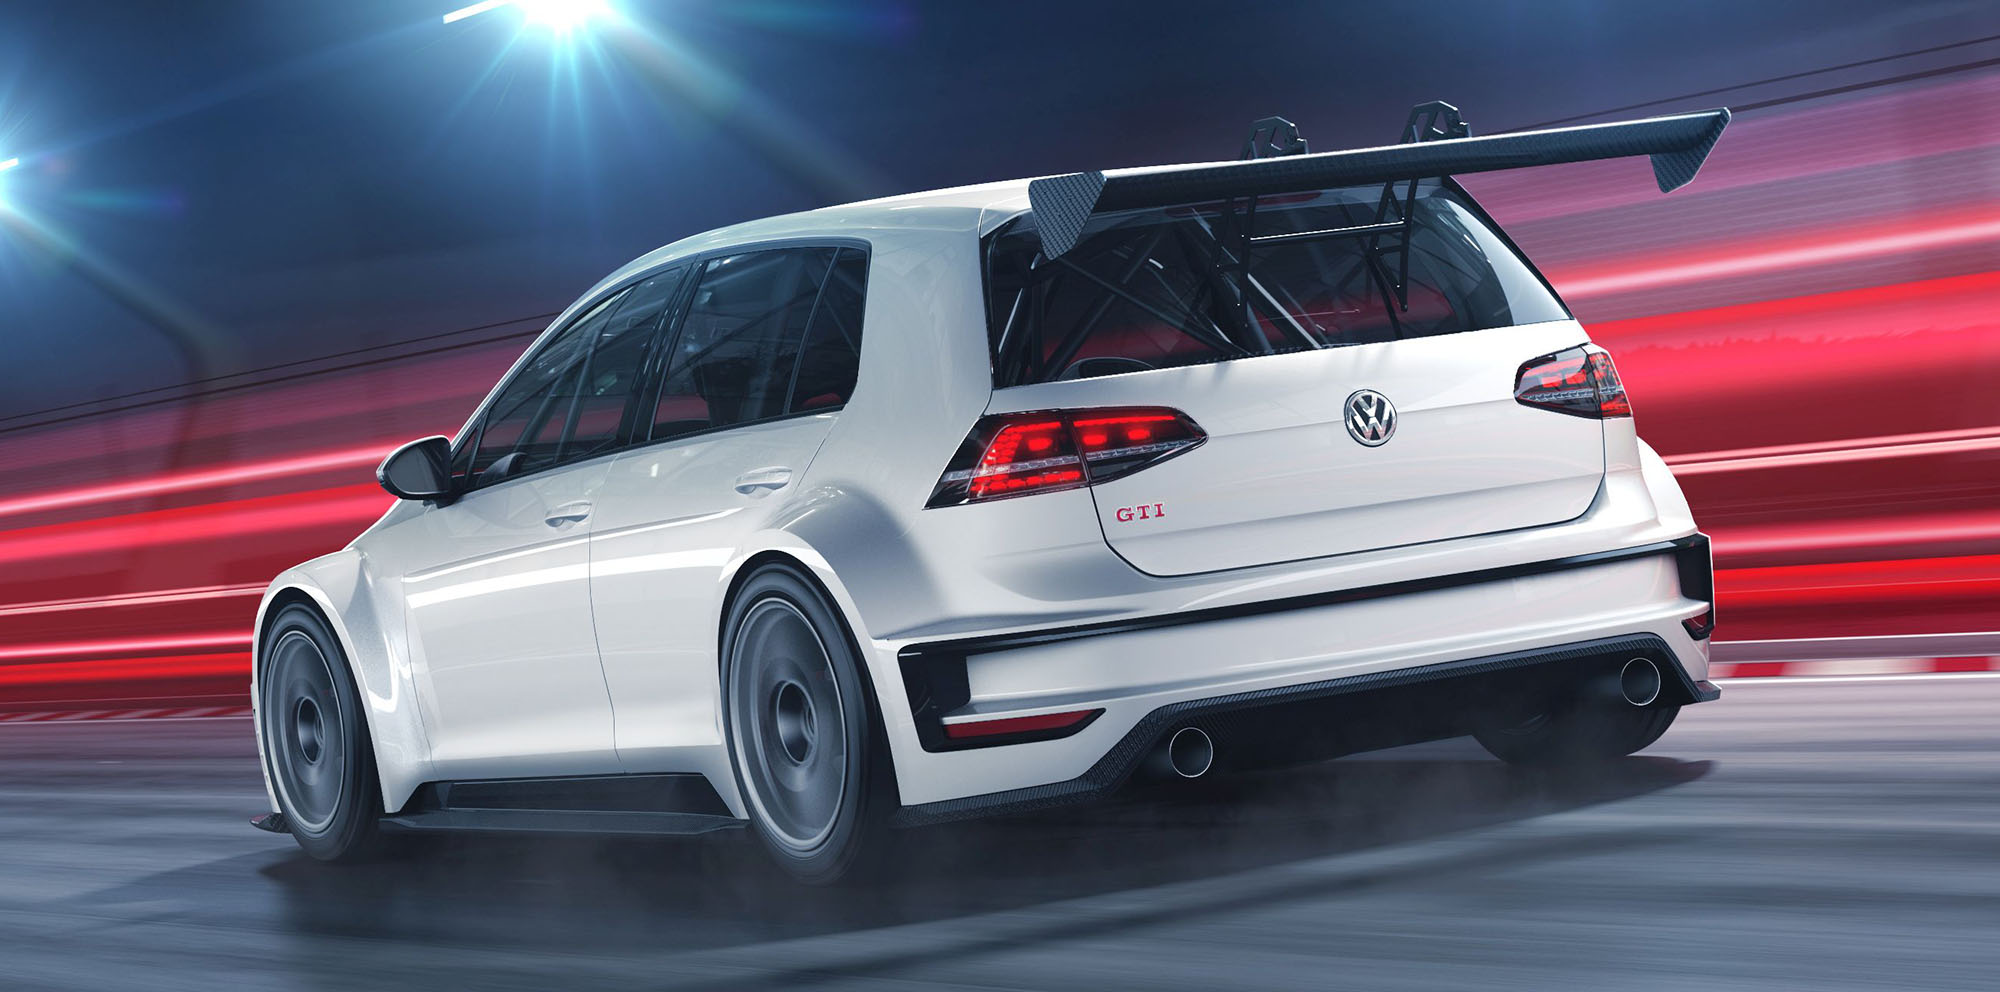 Mercedes Suv Models >> Volkswagen Golf GTI TCR race car revealed - photos | CarAdvice